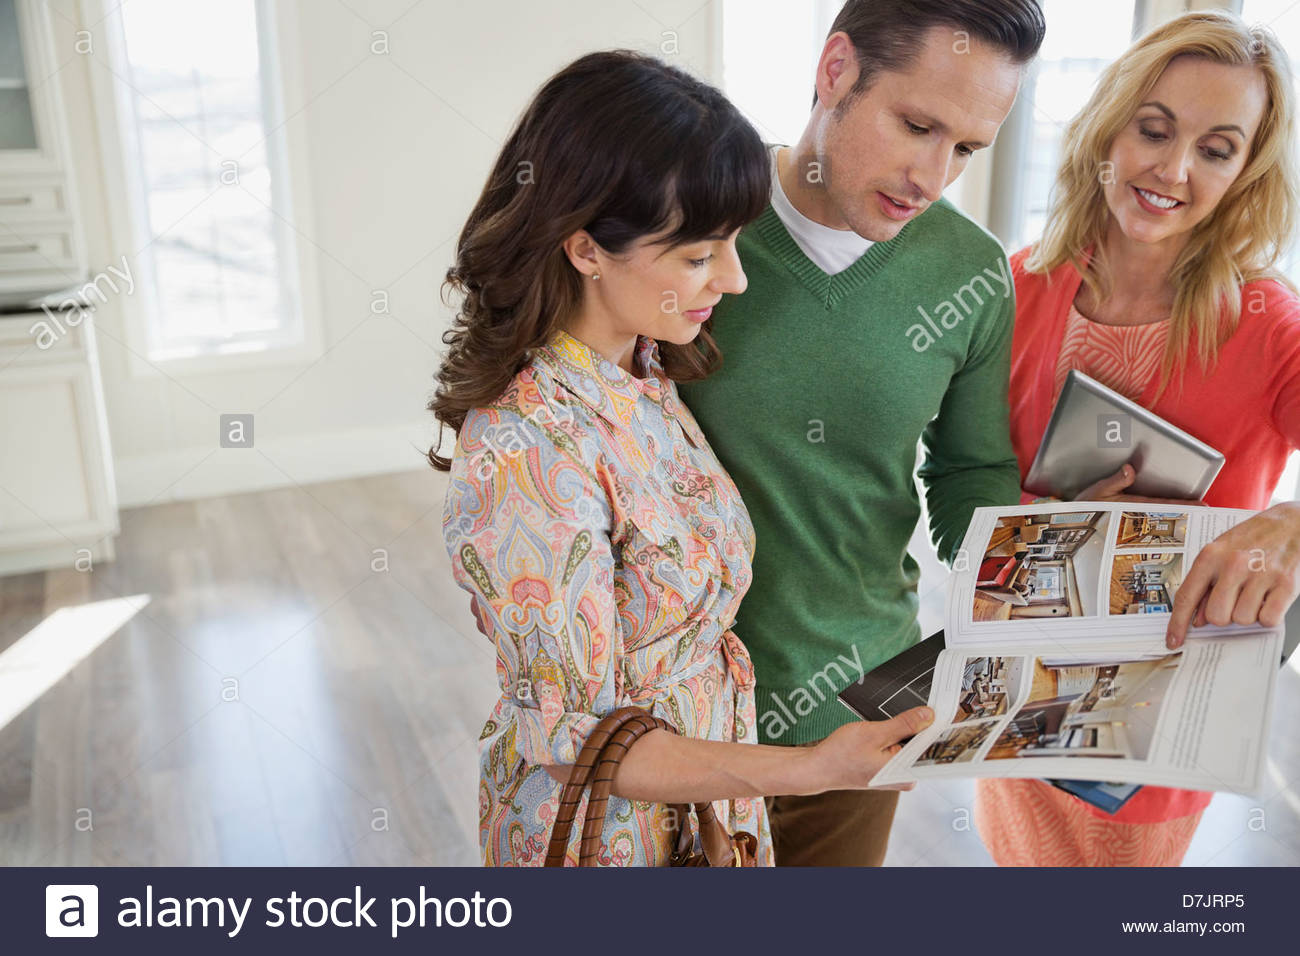 Female realtor showing new home brochure to couple Stock Photo